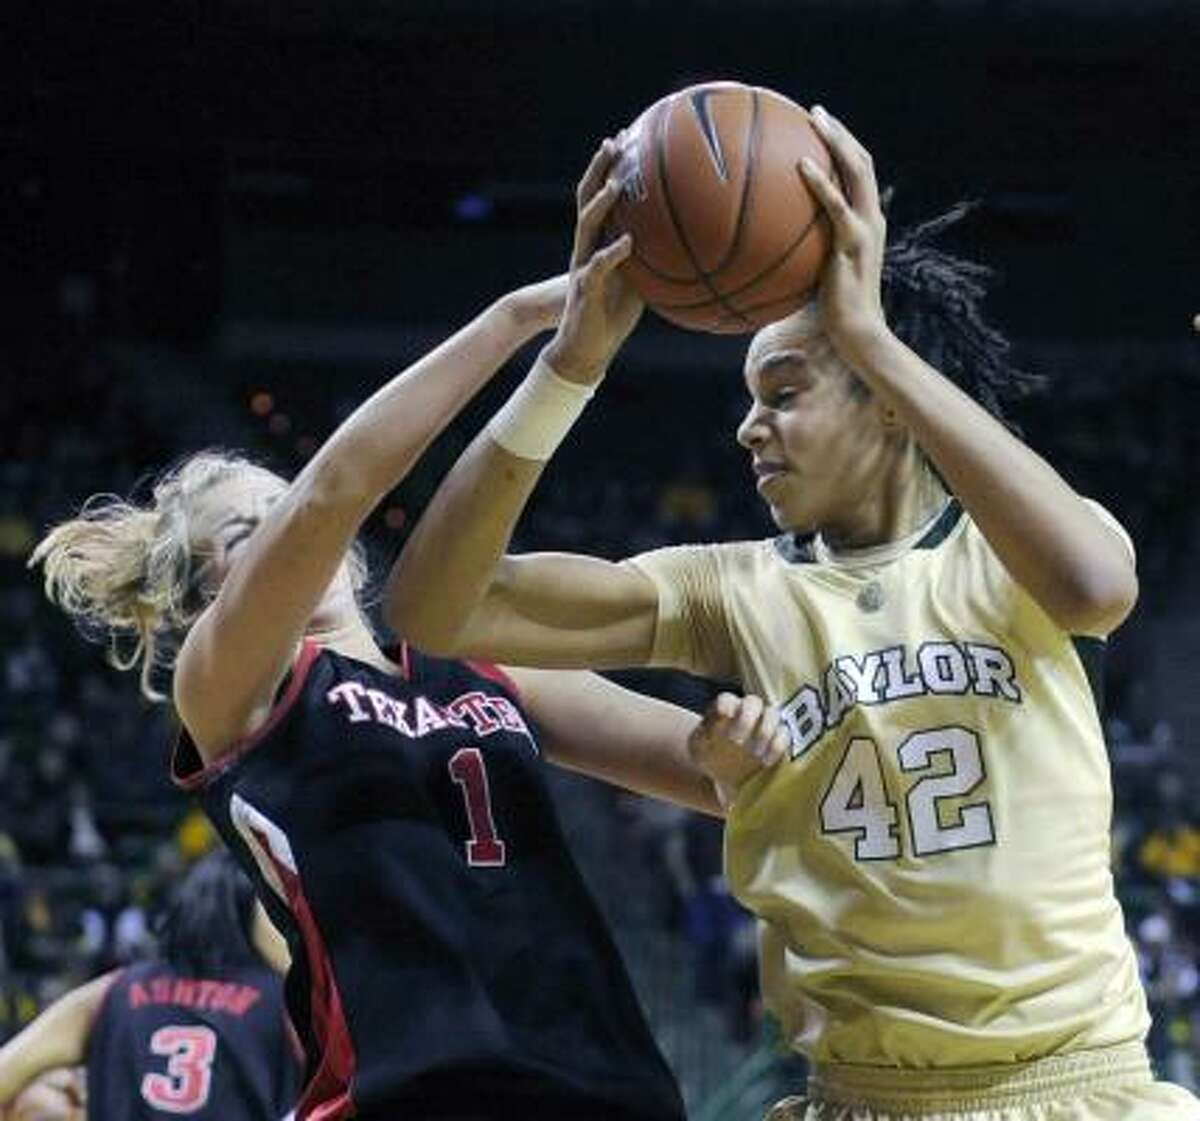 Baylor's Brittney Griner, a freshman from Nimitz, was ejected from the March 3 game against Texas Tech in the second half for throwing a punch at Jordan Barncastle.